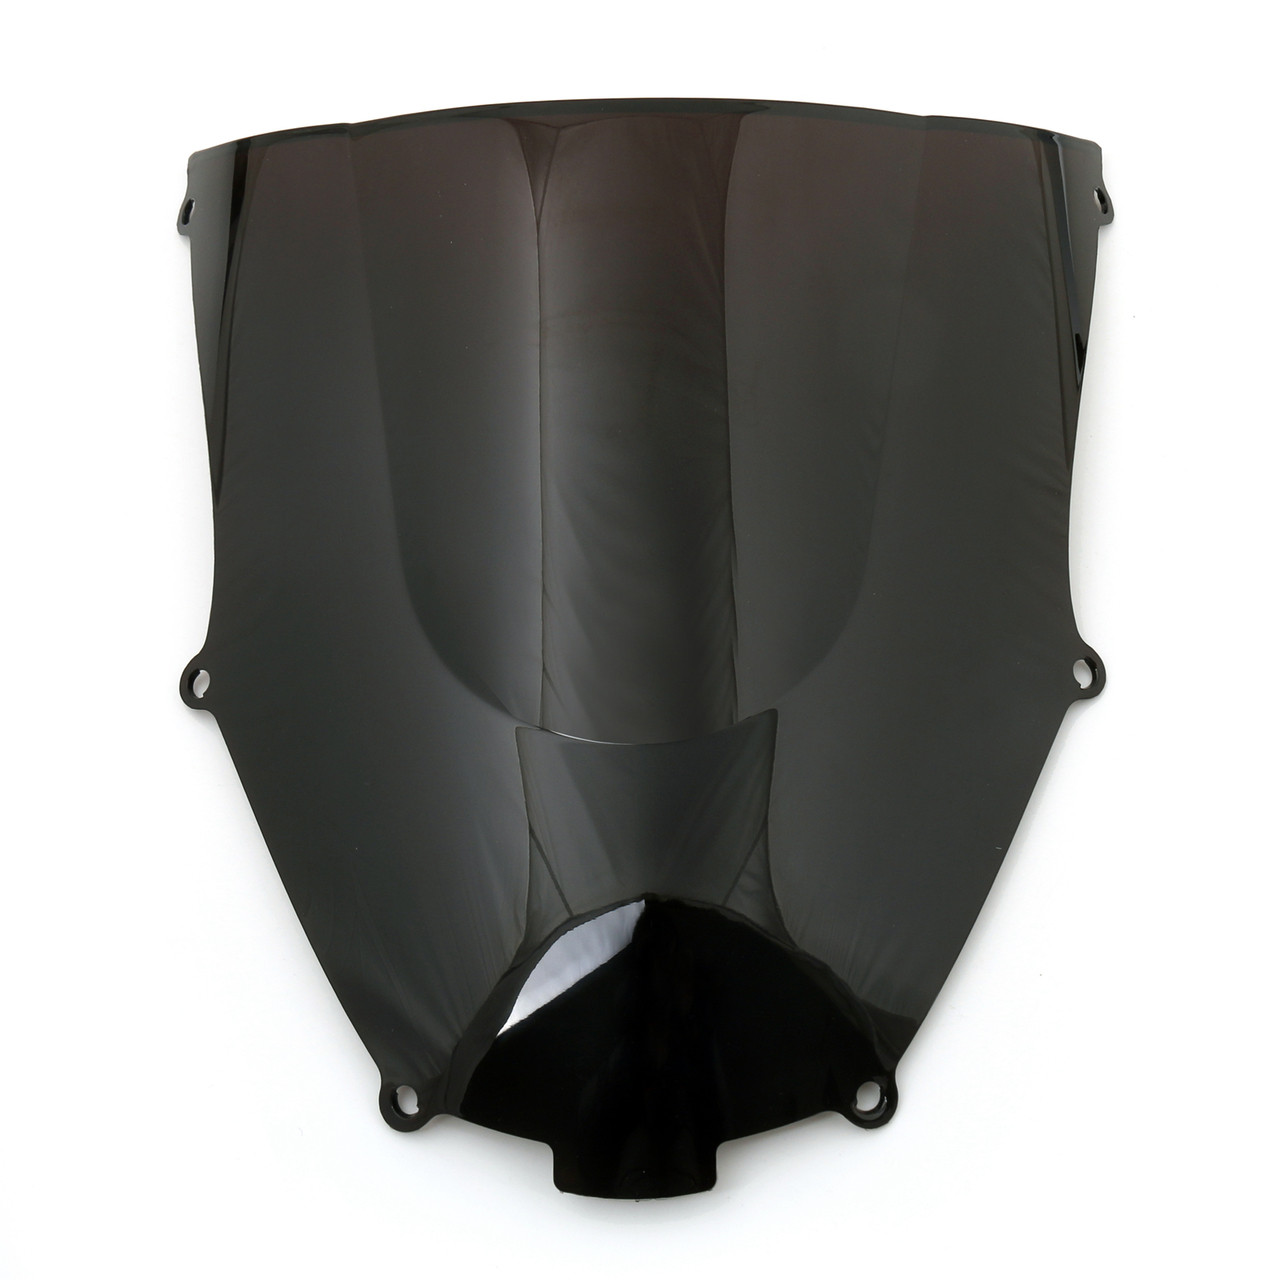 Windscreen Windshield Kawasaki Ninja ZX9 R (2000-2002) Black